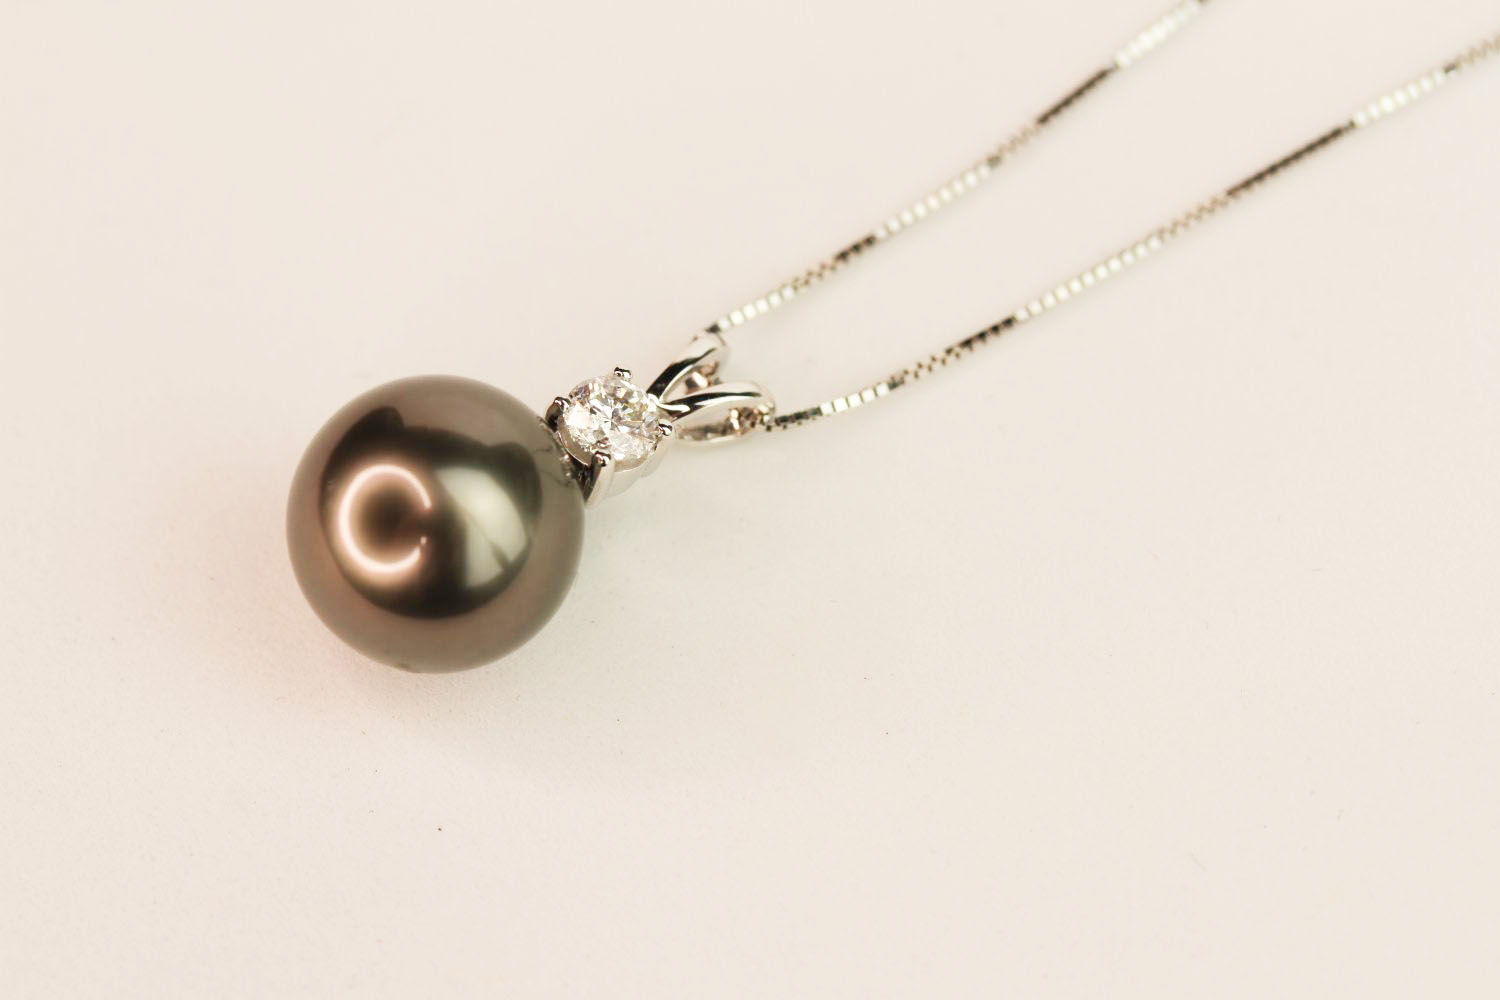 9ct white gold Tahitian black pearl pendant with diamond bale on a 10ct white gold chain, boxed. - Image 2 of 2